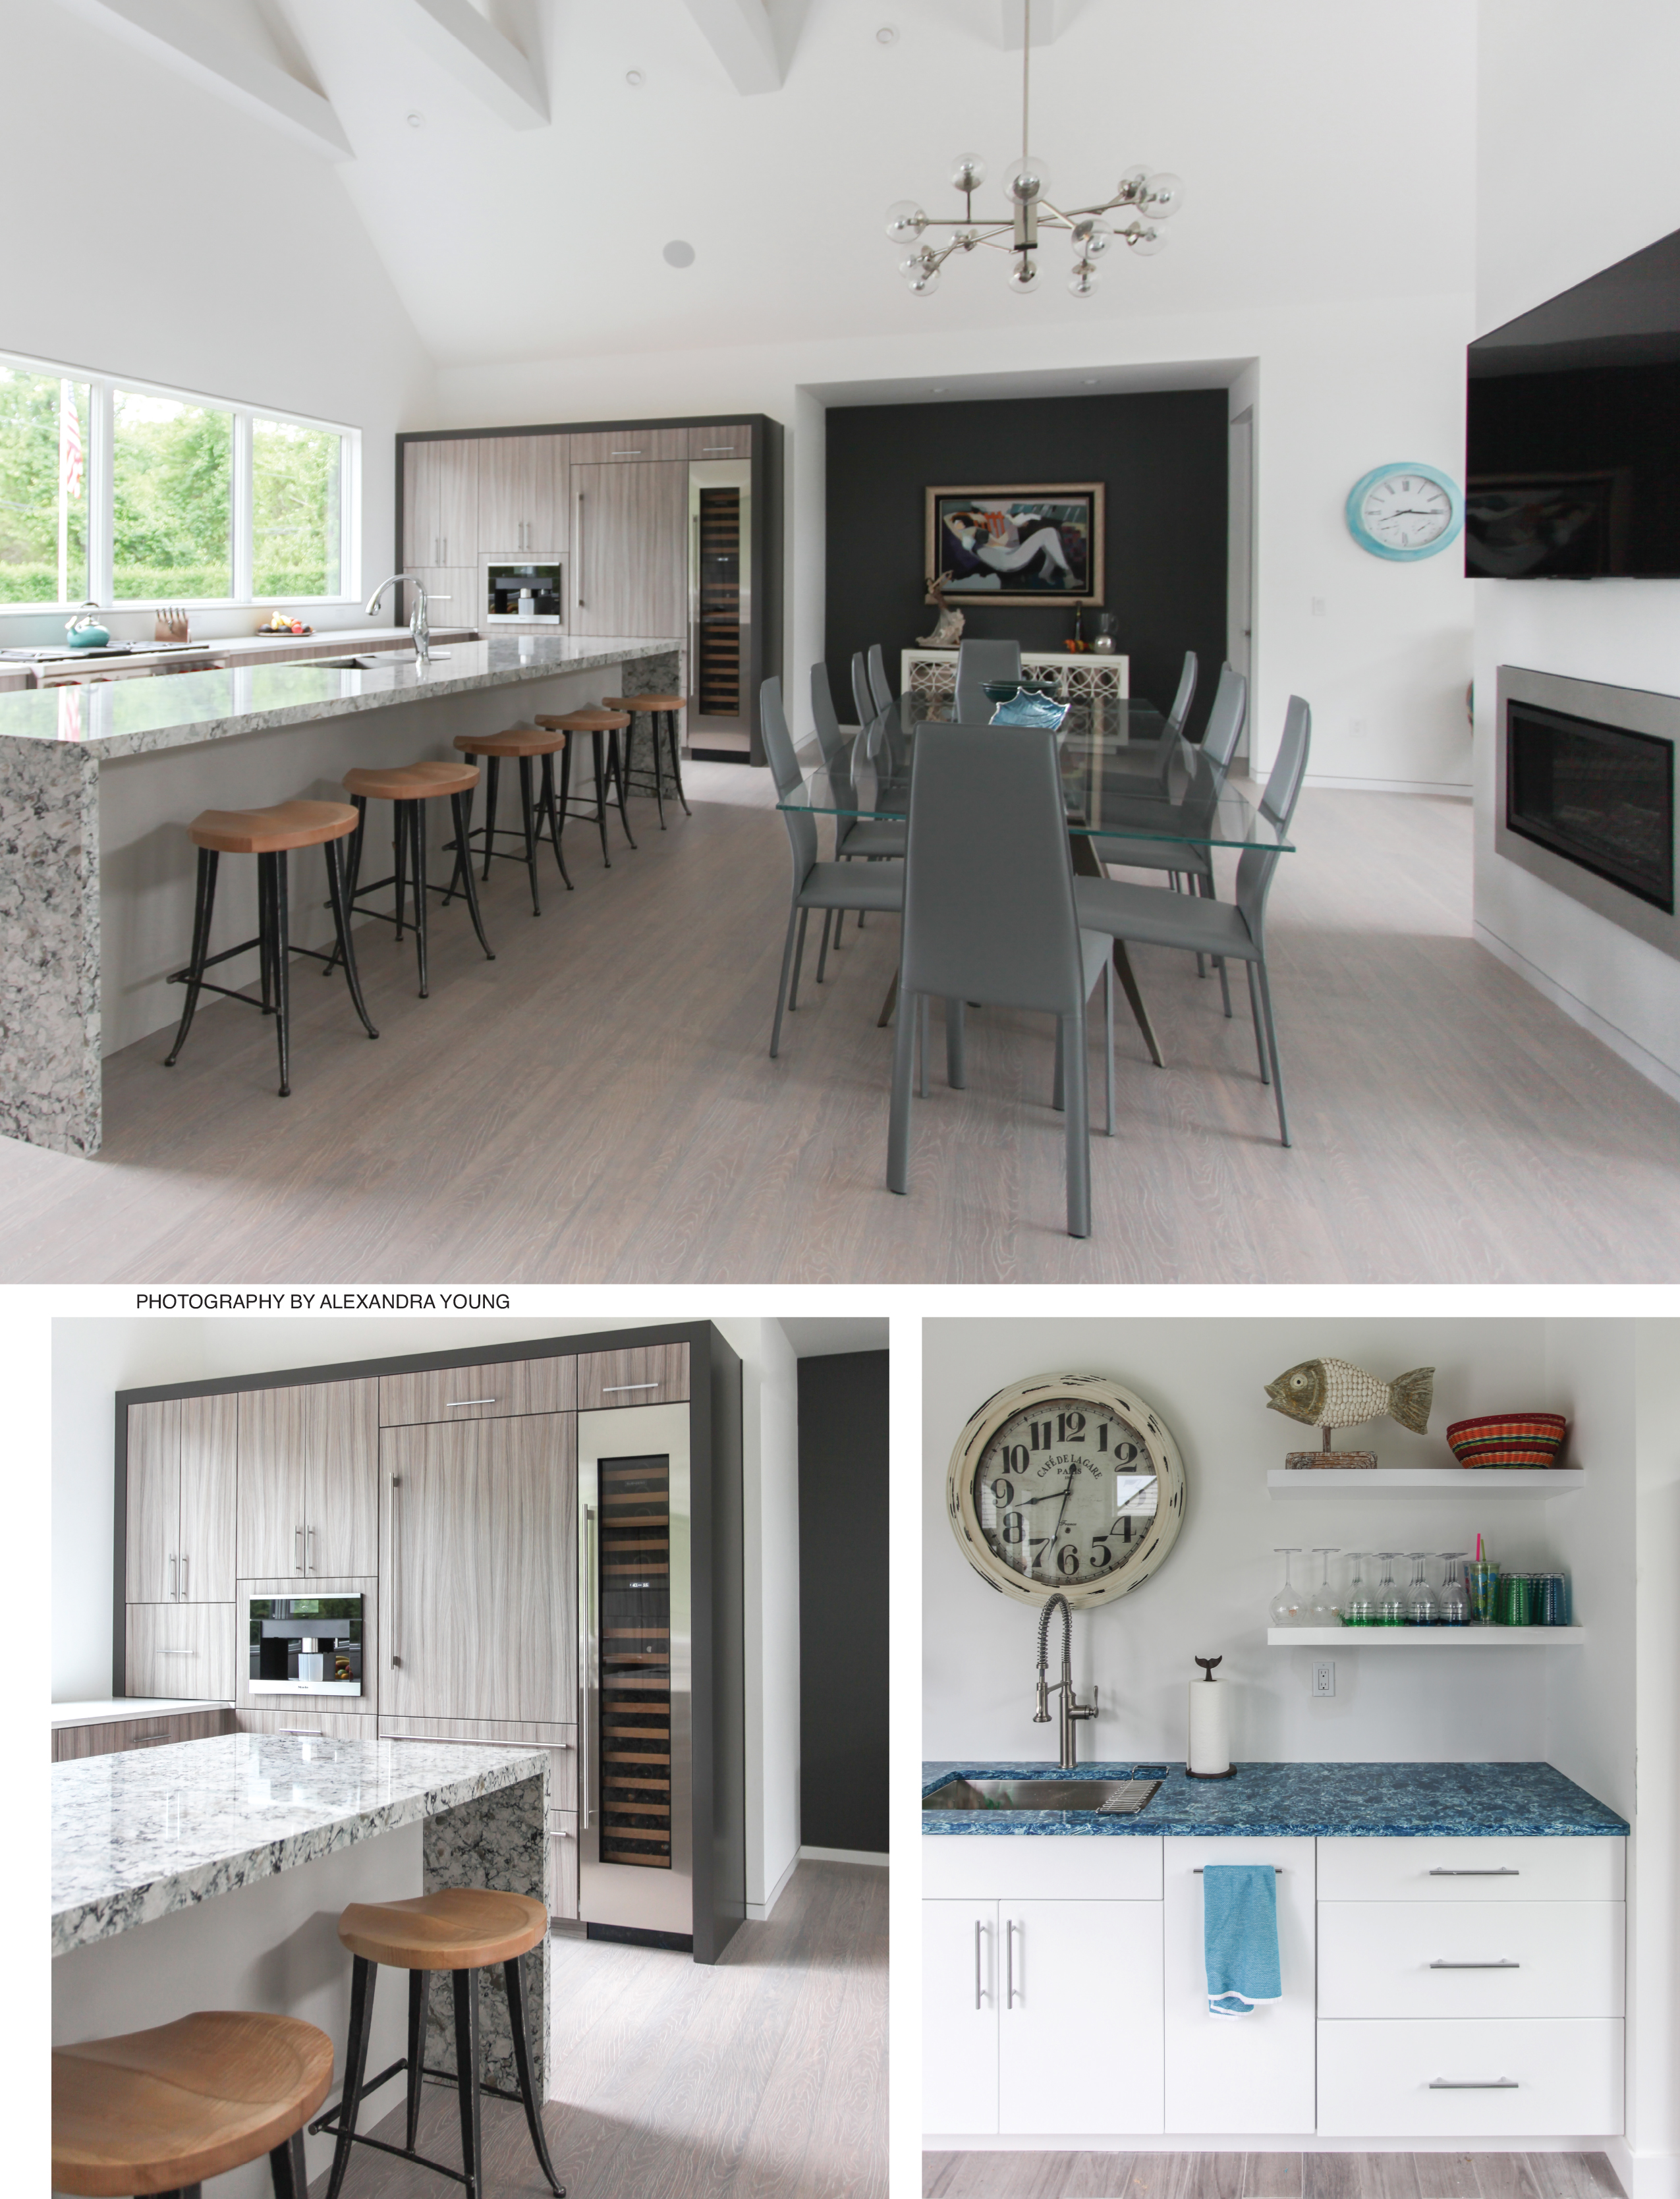 073-Coastal Cabinetry Edit